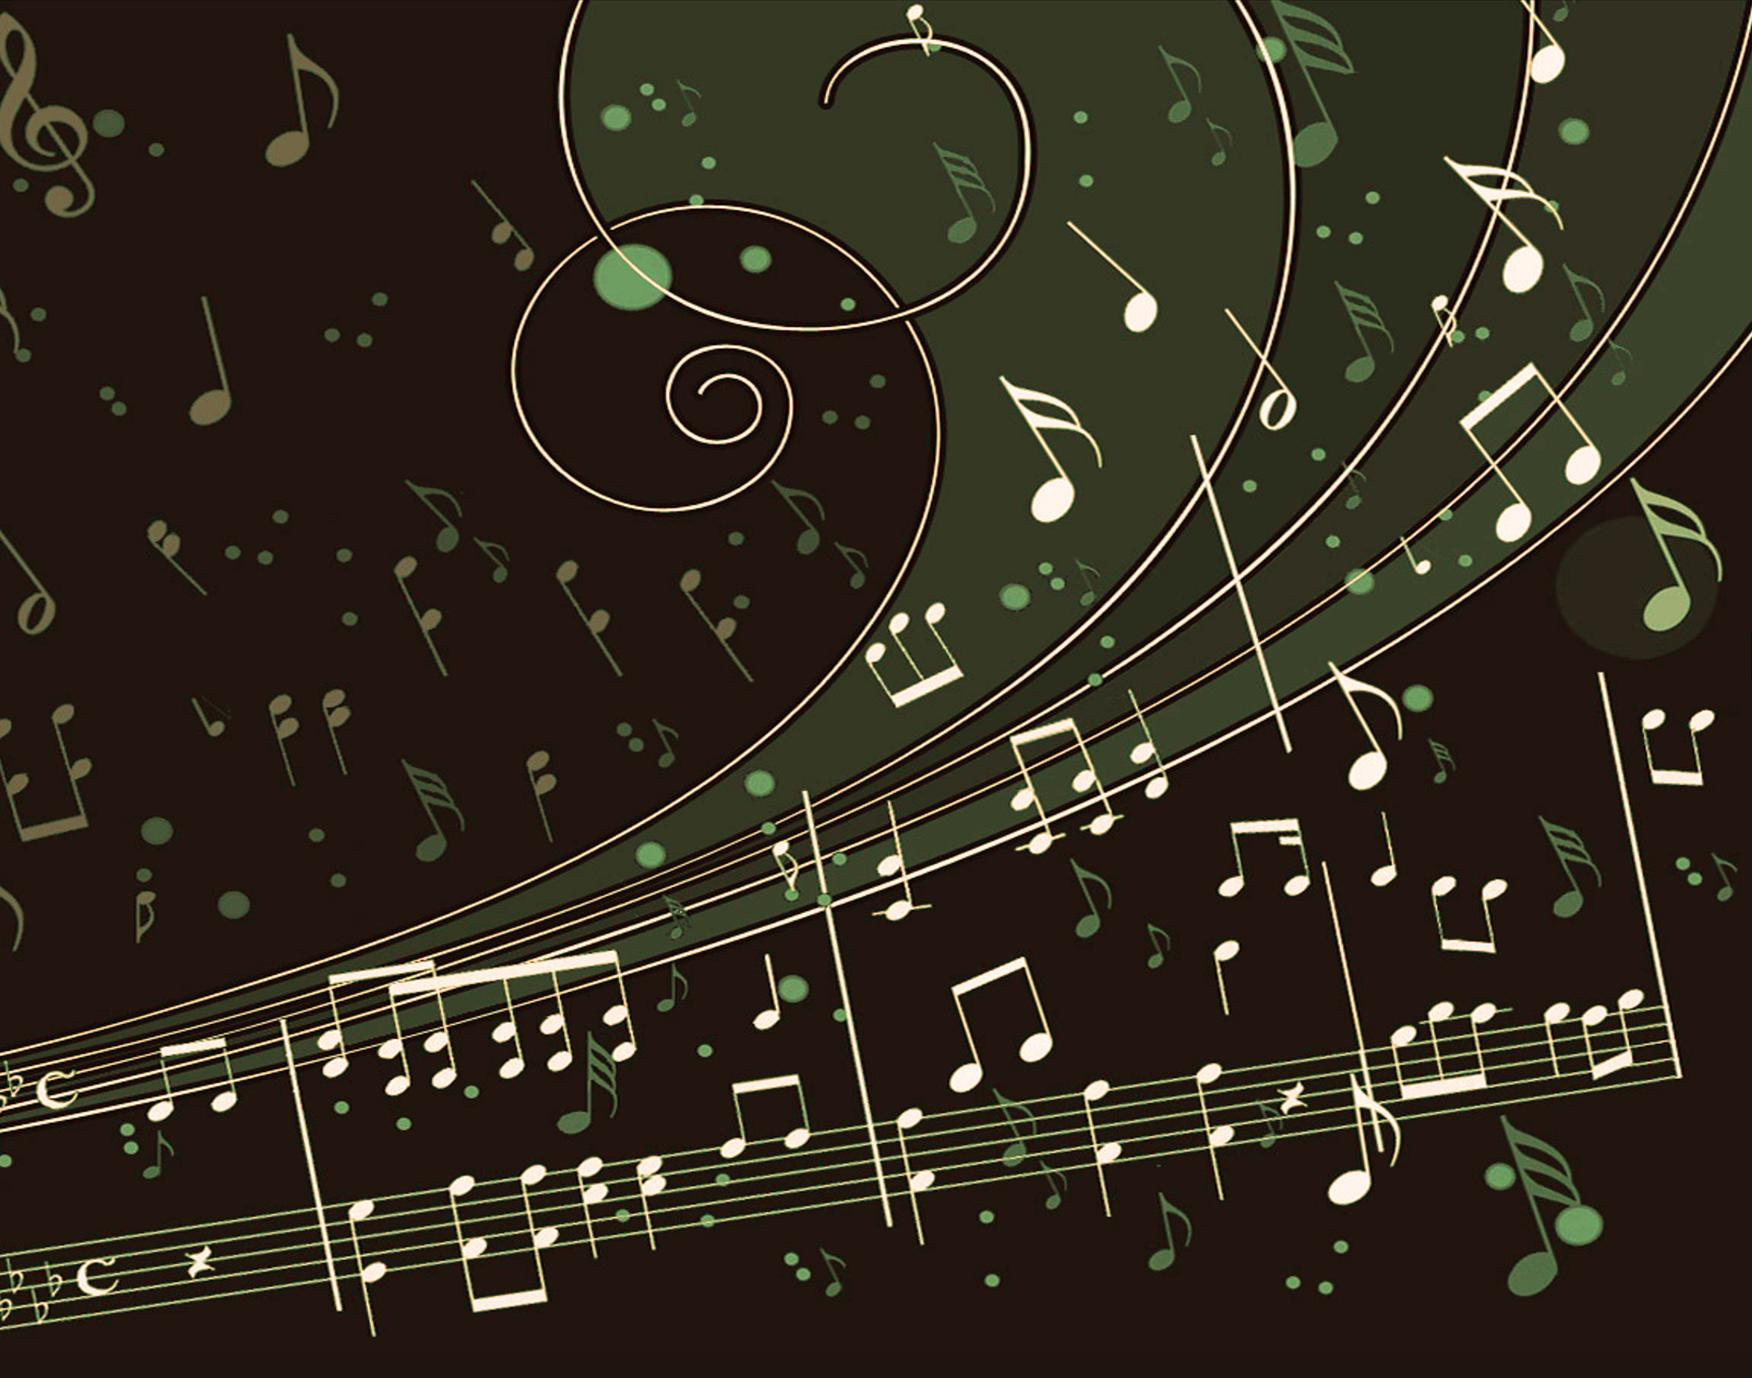 Music Background Images: Free Music Wallpaper Backgrounds